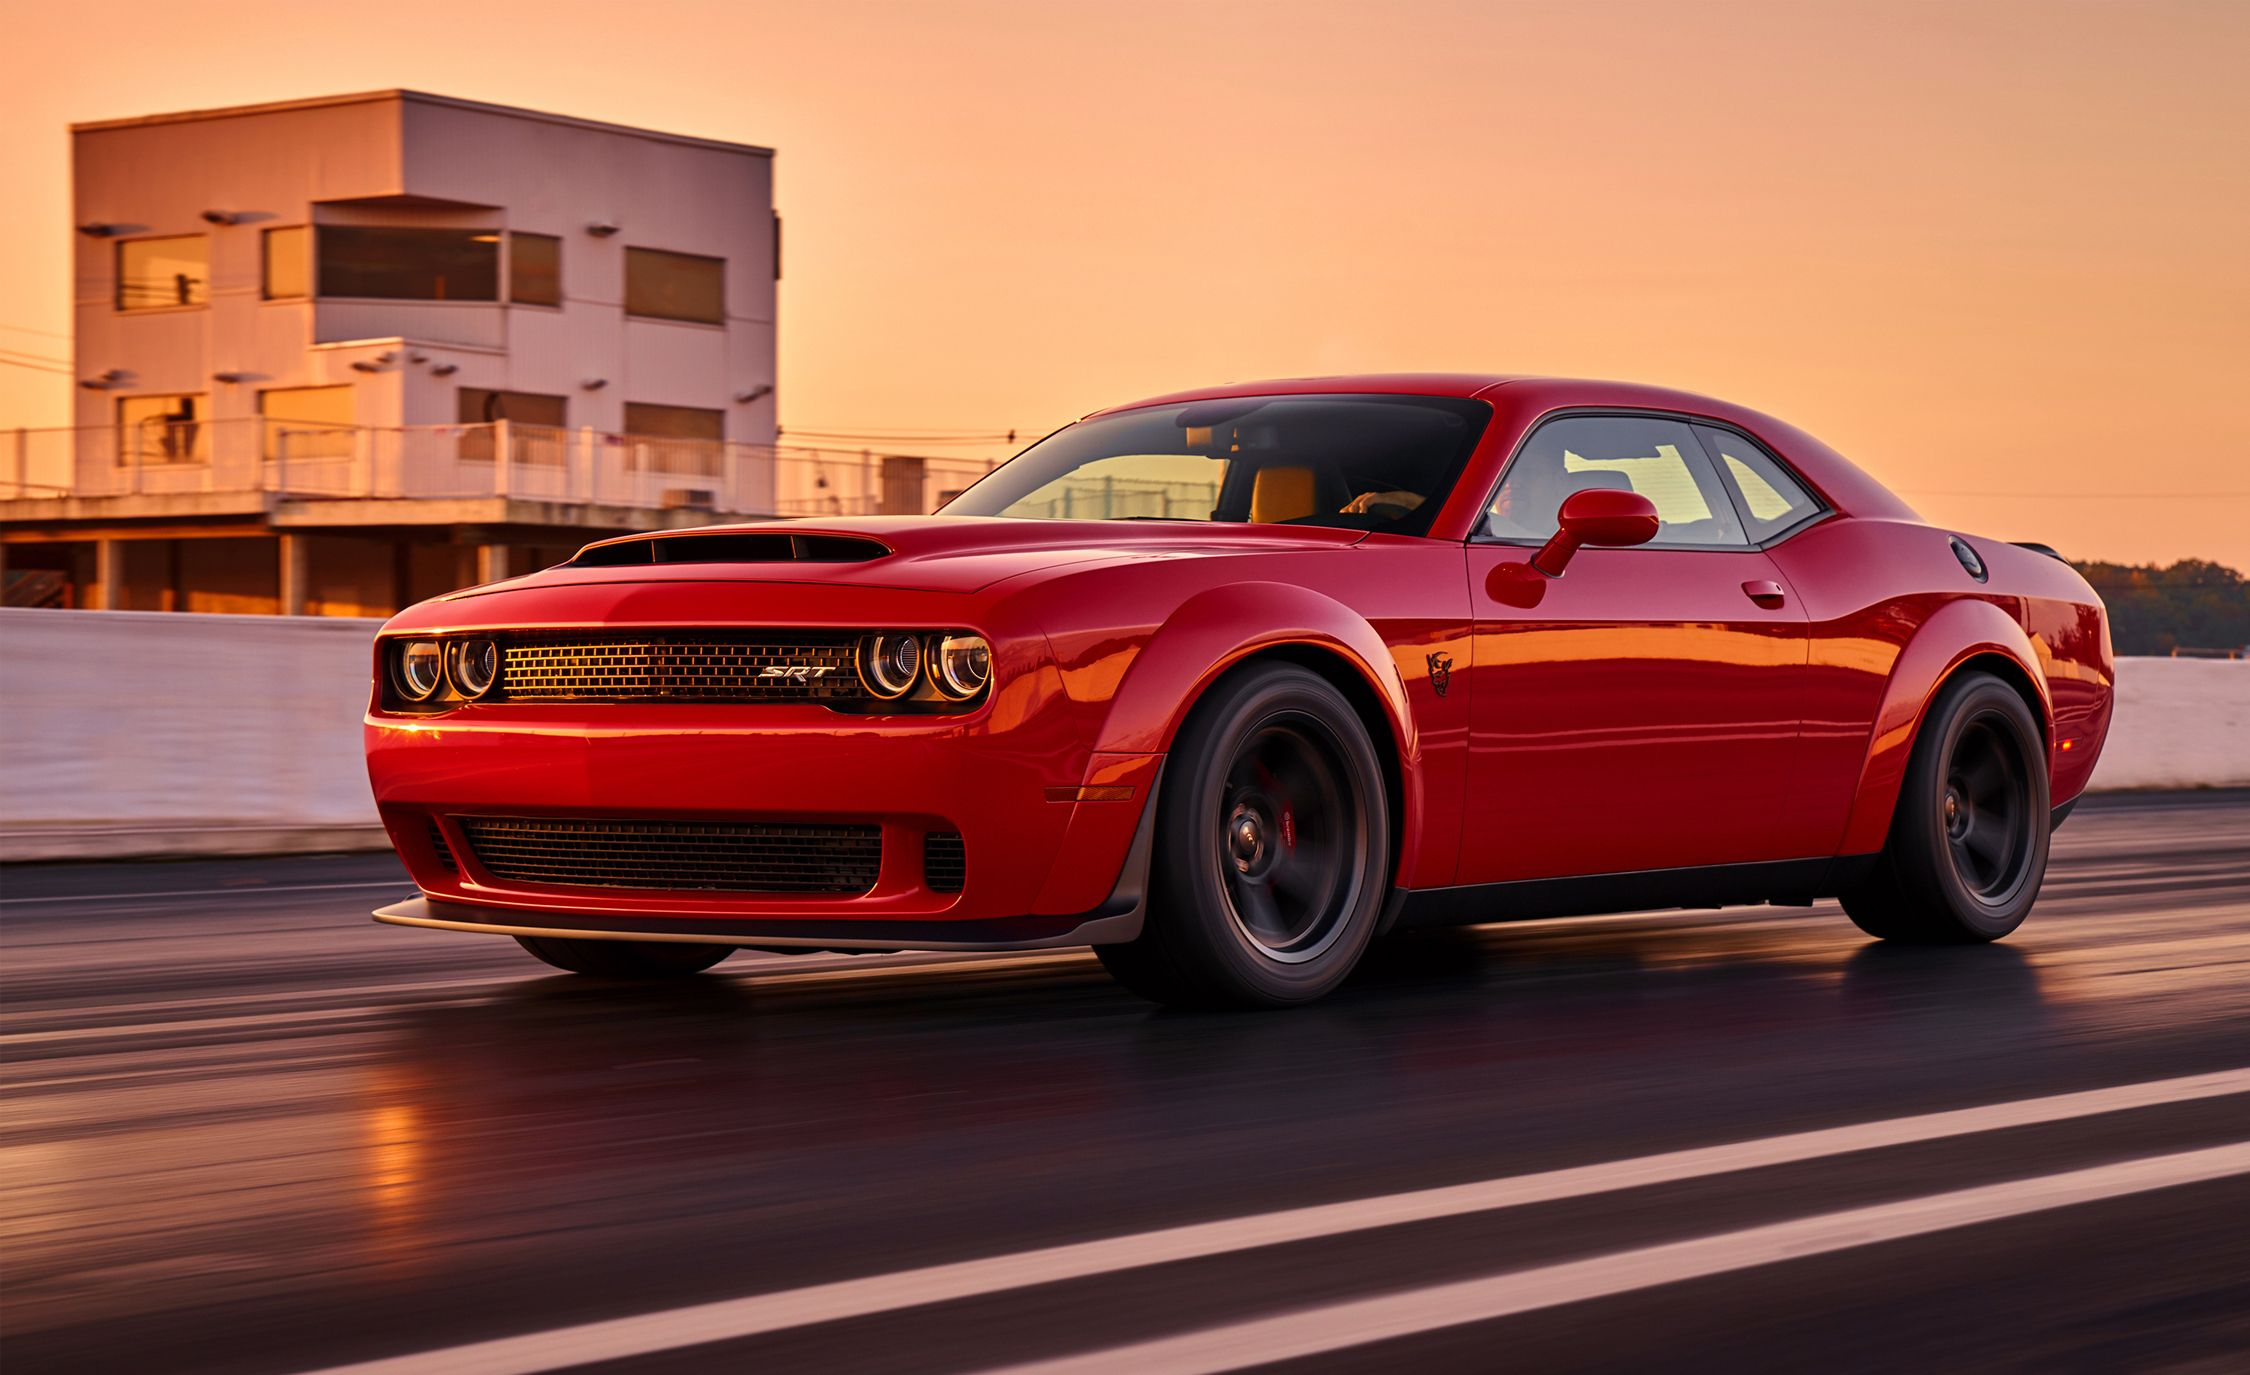 2018 Dodge Challenger Srt Demon Reviews Price Photos And Specs Car Driver